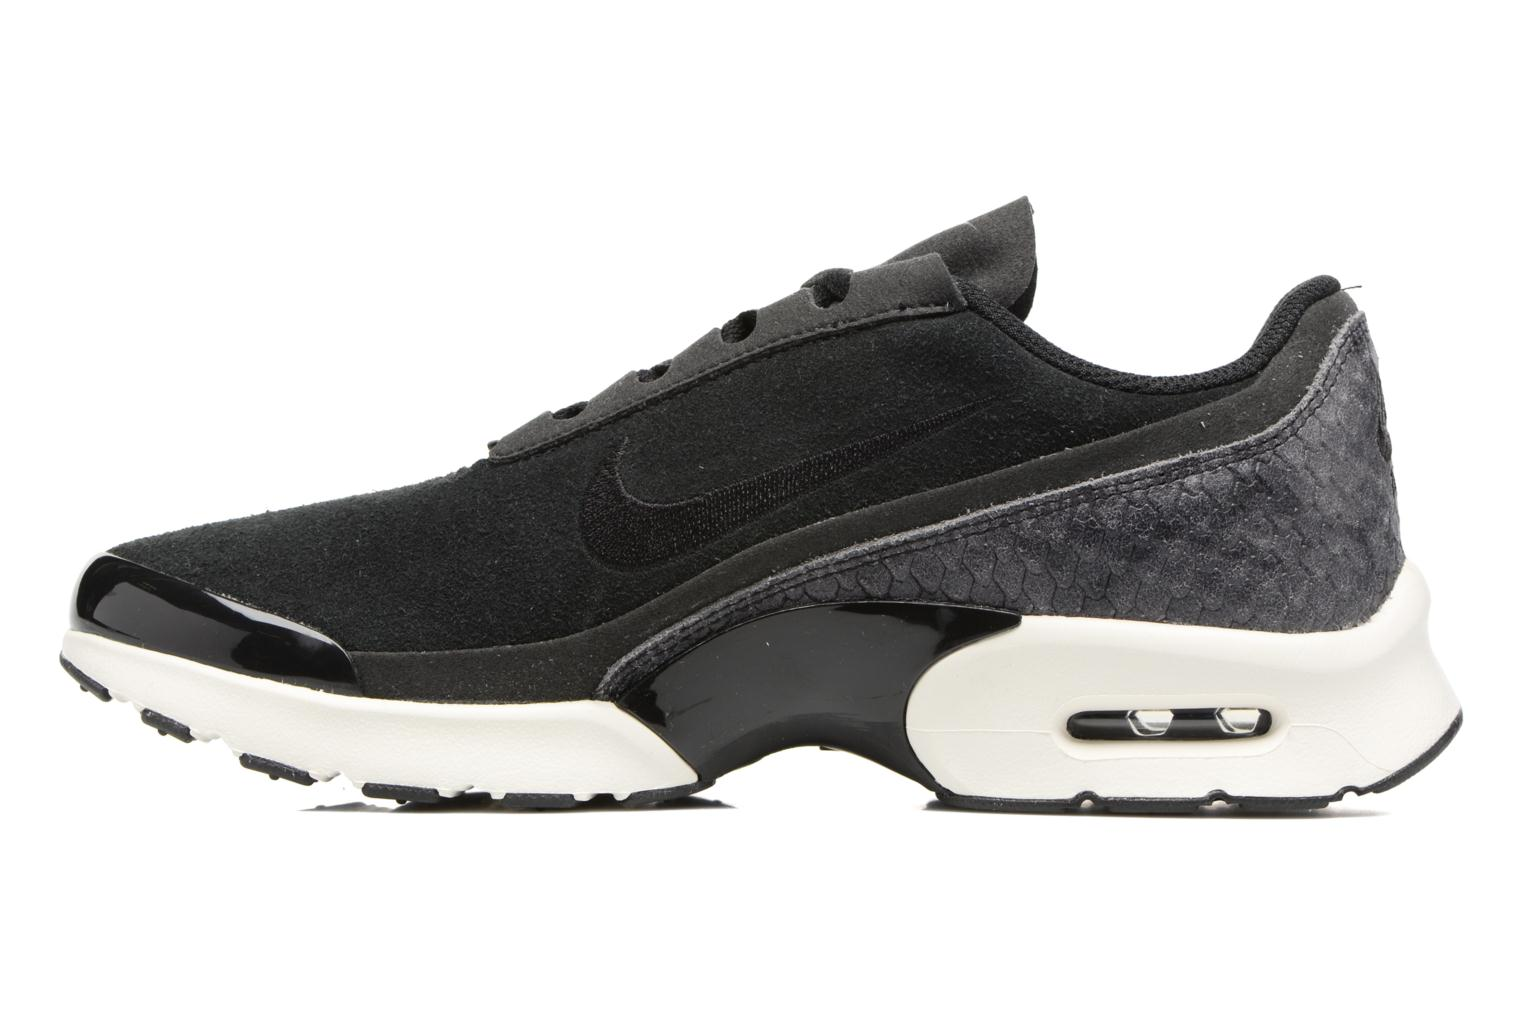 Black/Black-Sail-Dark Grey Nike W Nike Air Max Jewell Prm Txt (Blanc)